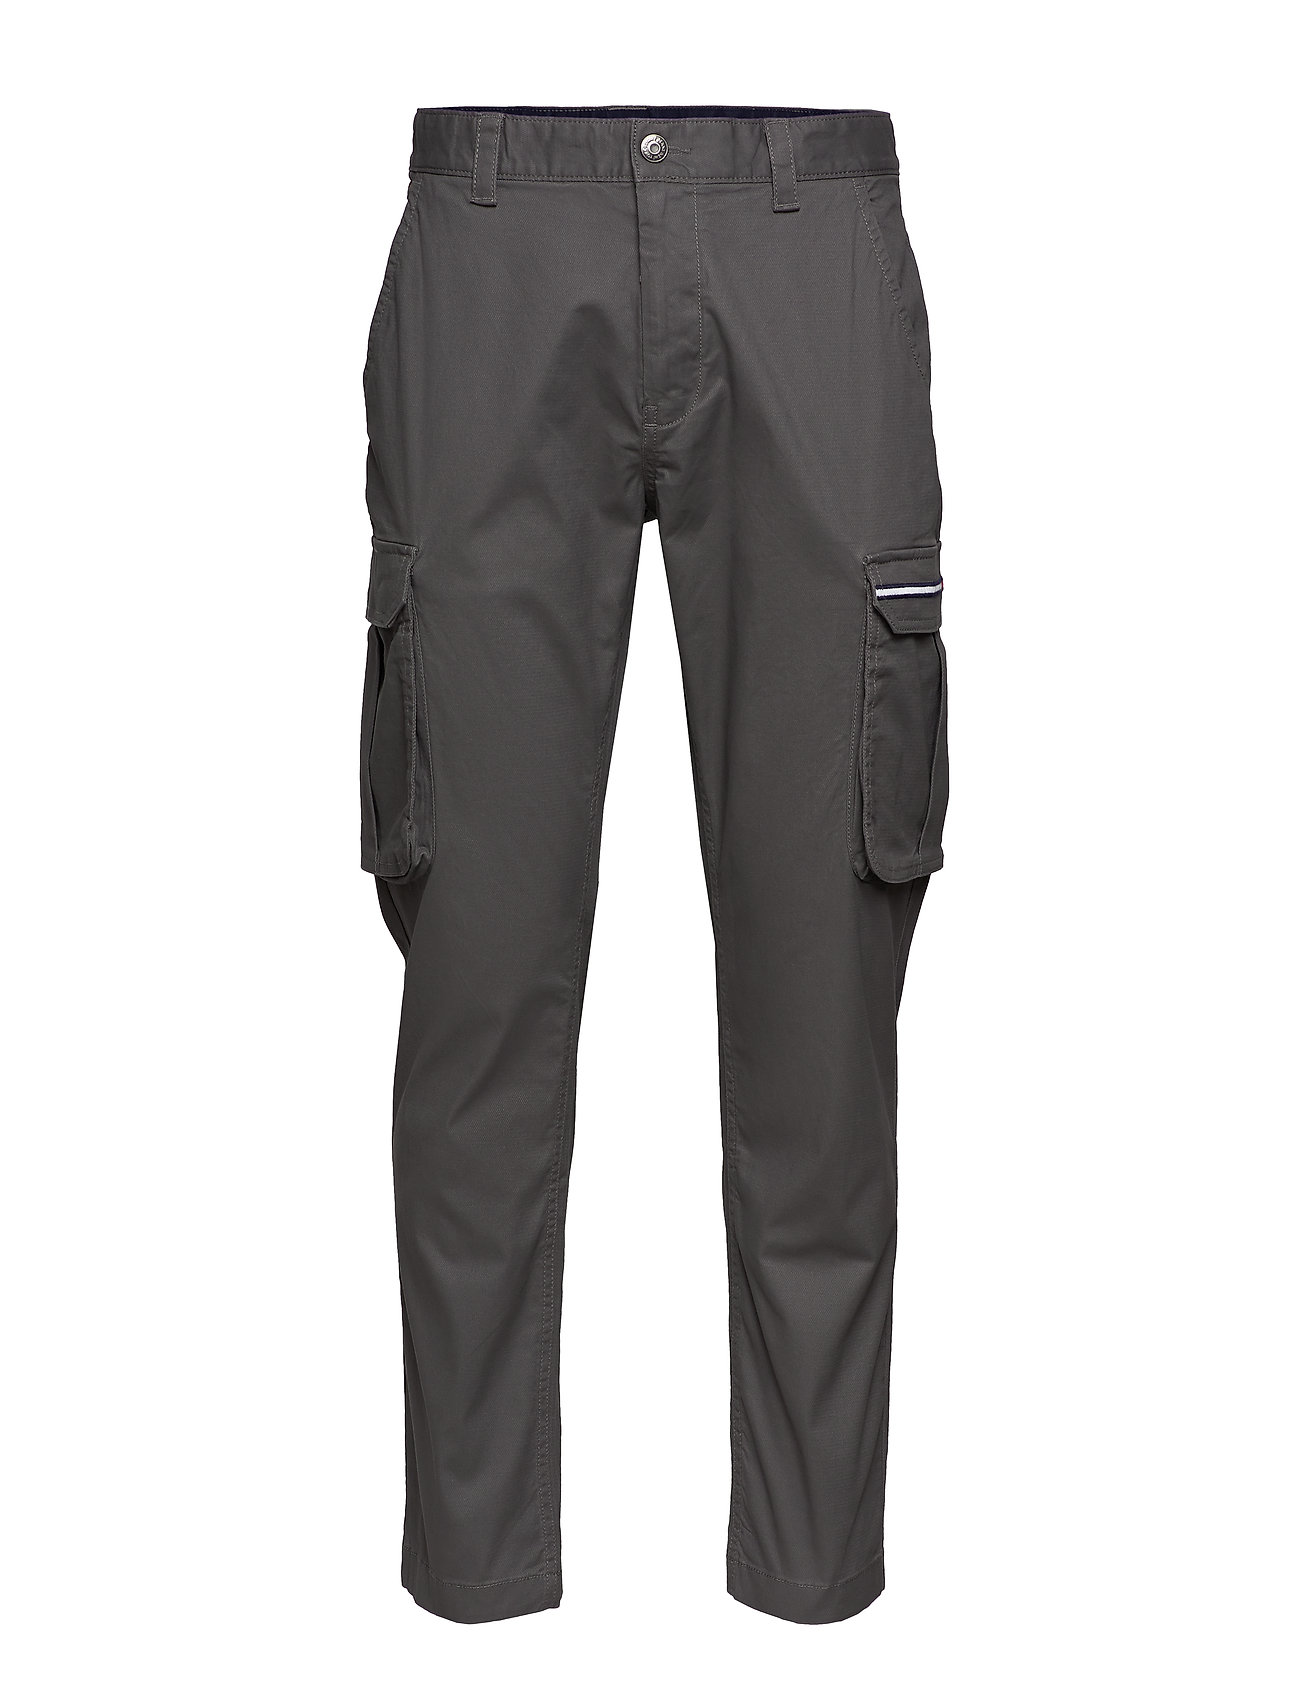 Image of Tjm Cargo Dobby Pant Trousers Cargo Pants Grå Tommy Jeans (3307691739)